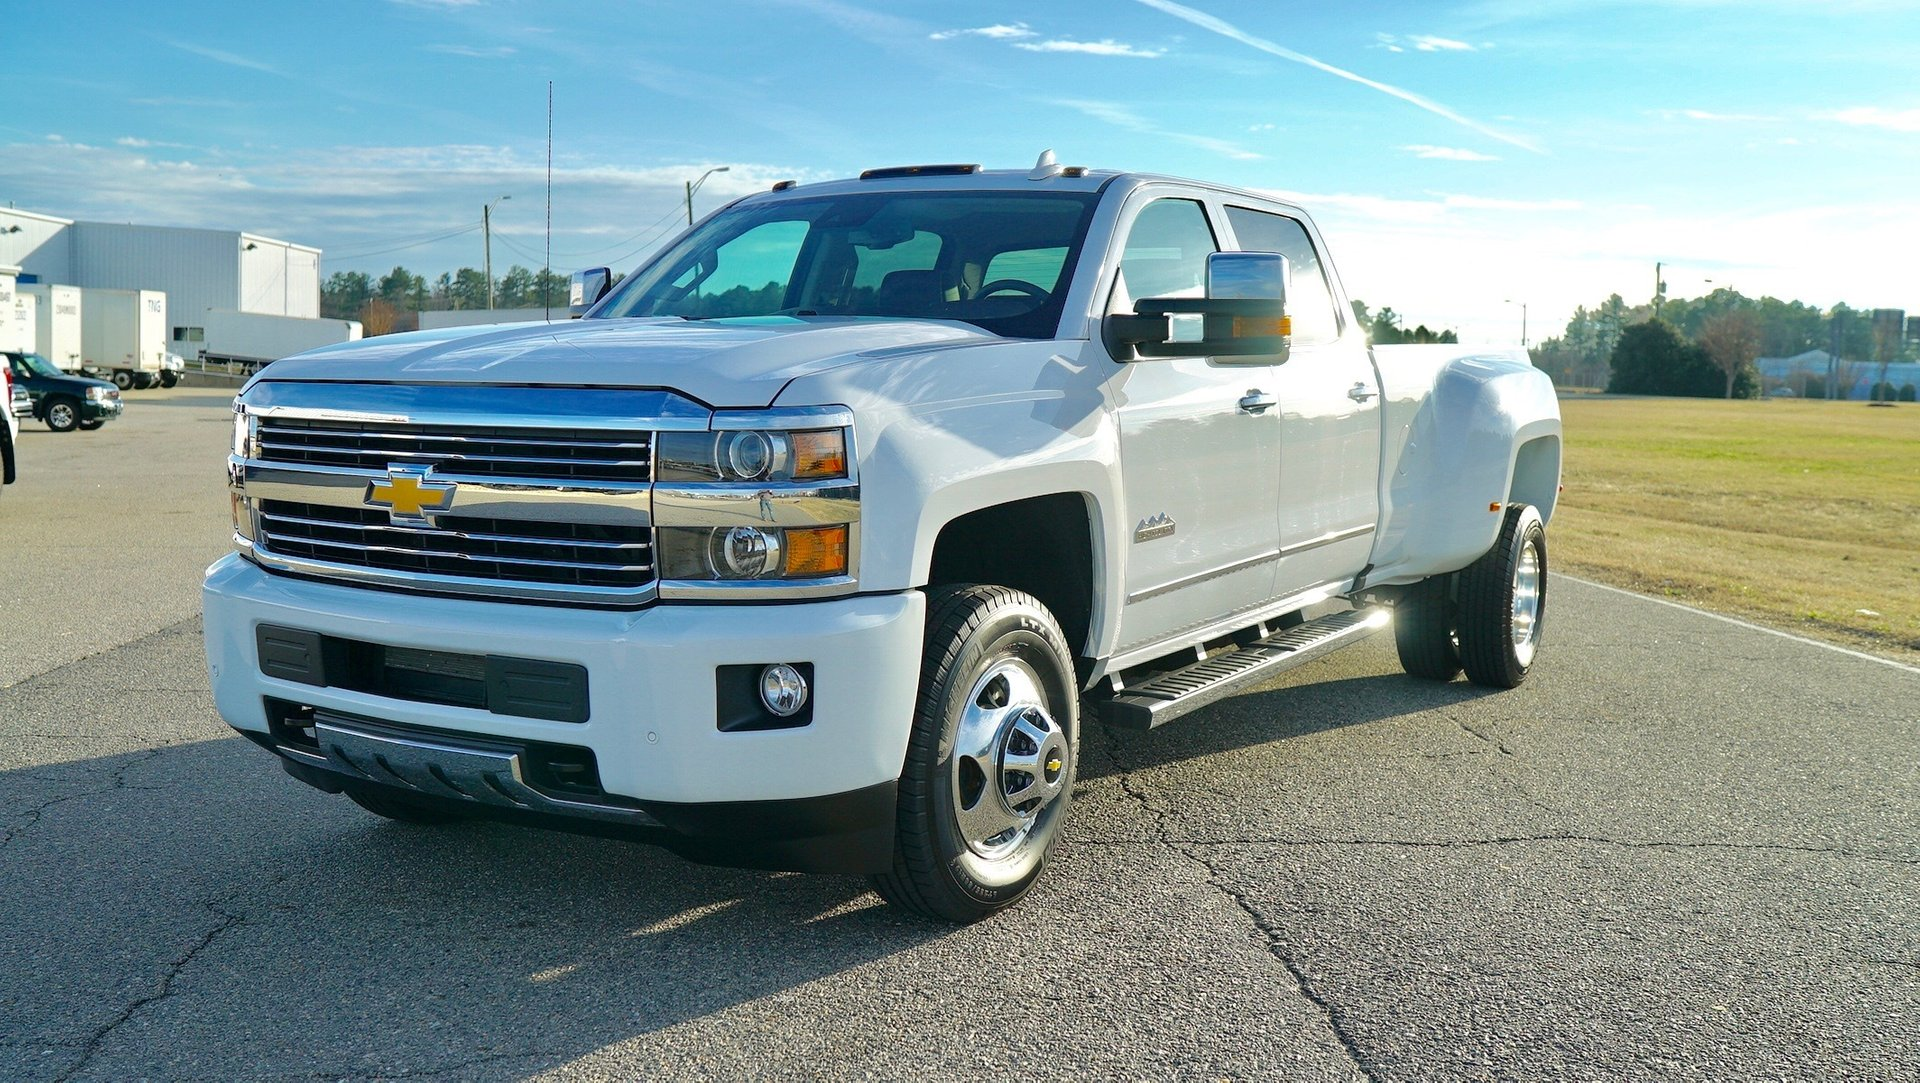 2016 chevrolet silverado 3500hd 4wd crew cab 167 7 high country